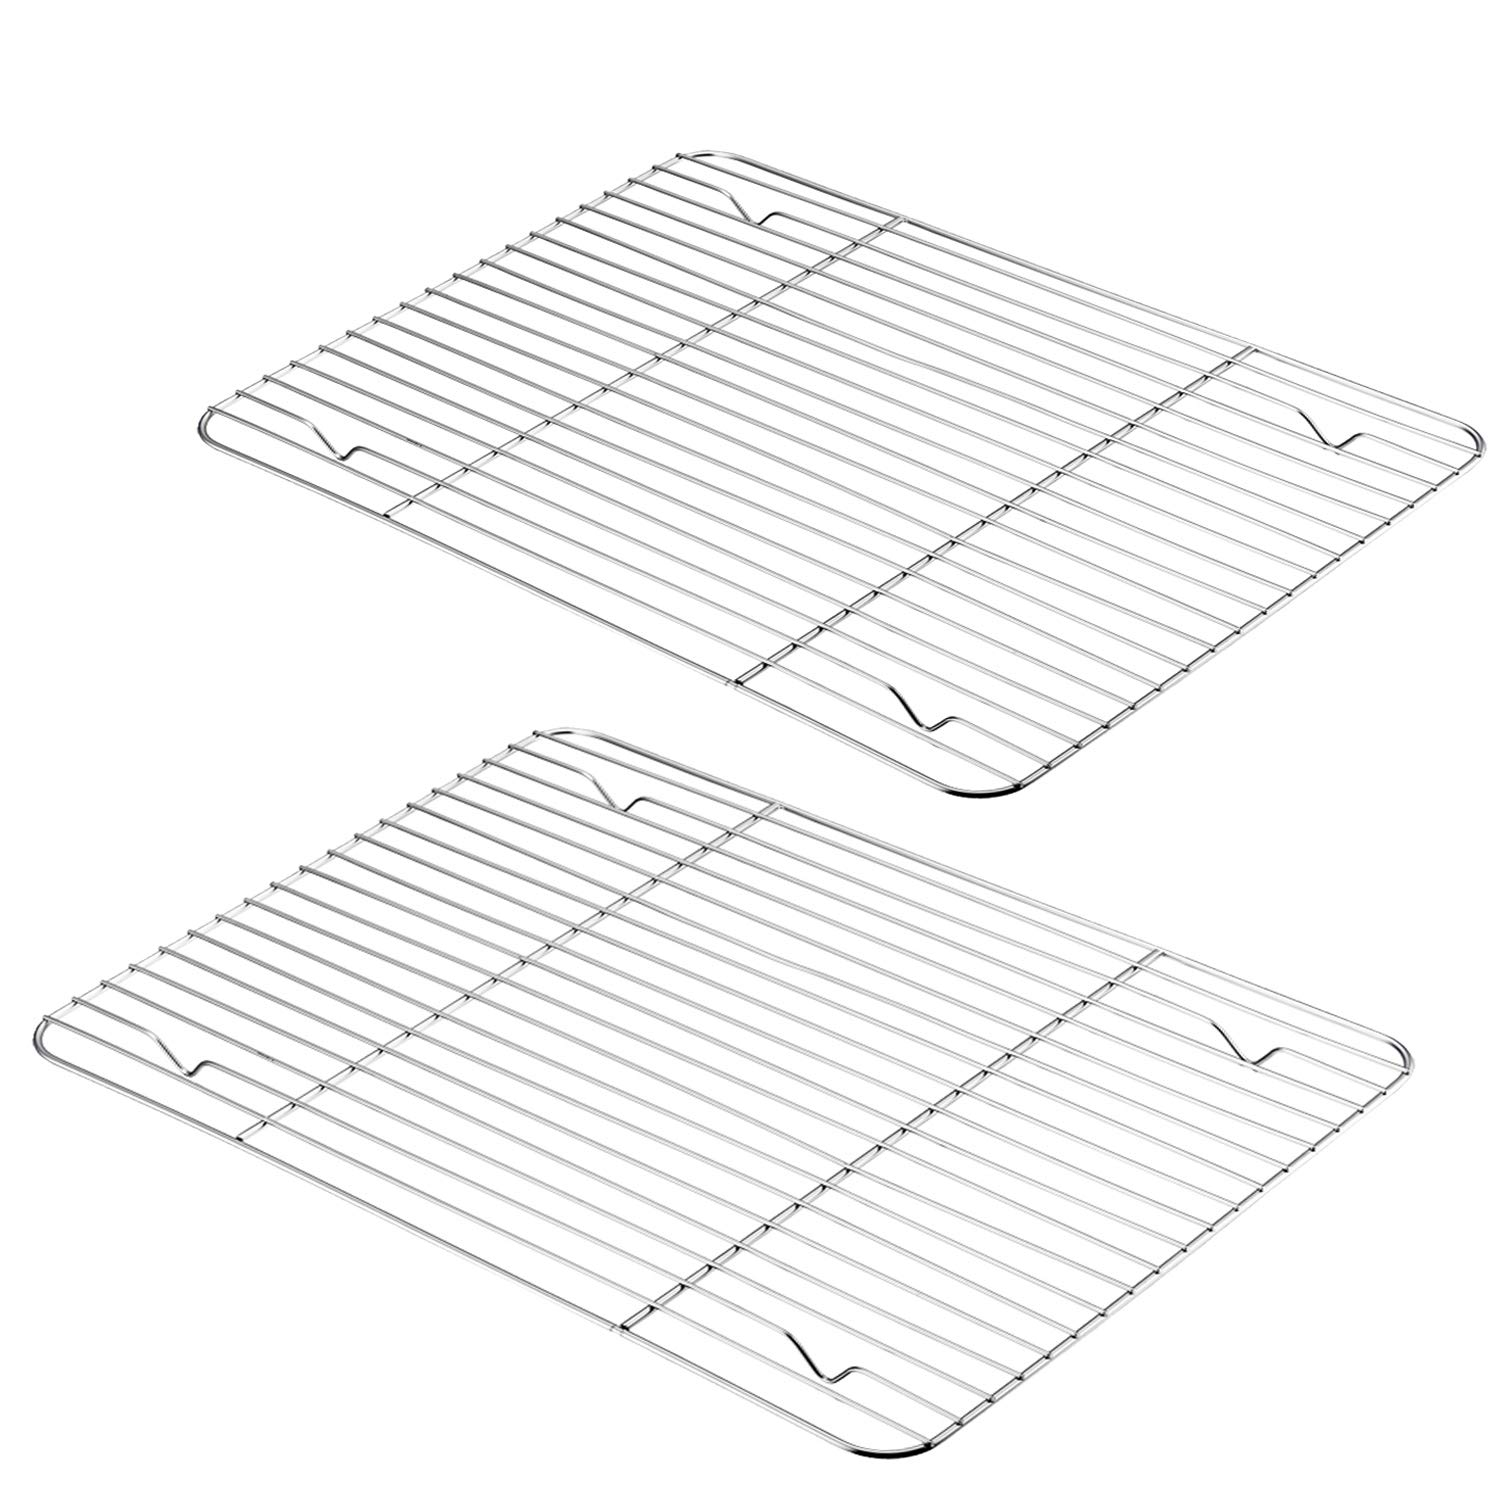 P&P CHEF Cooling Rack Pack of 2, Stainless Steel Baking Racks for Baking Roasting Grilling Drying, Rectangle 15.3''x11.25''x0.6'', Oven & Dishwasher Safe